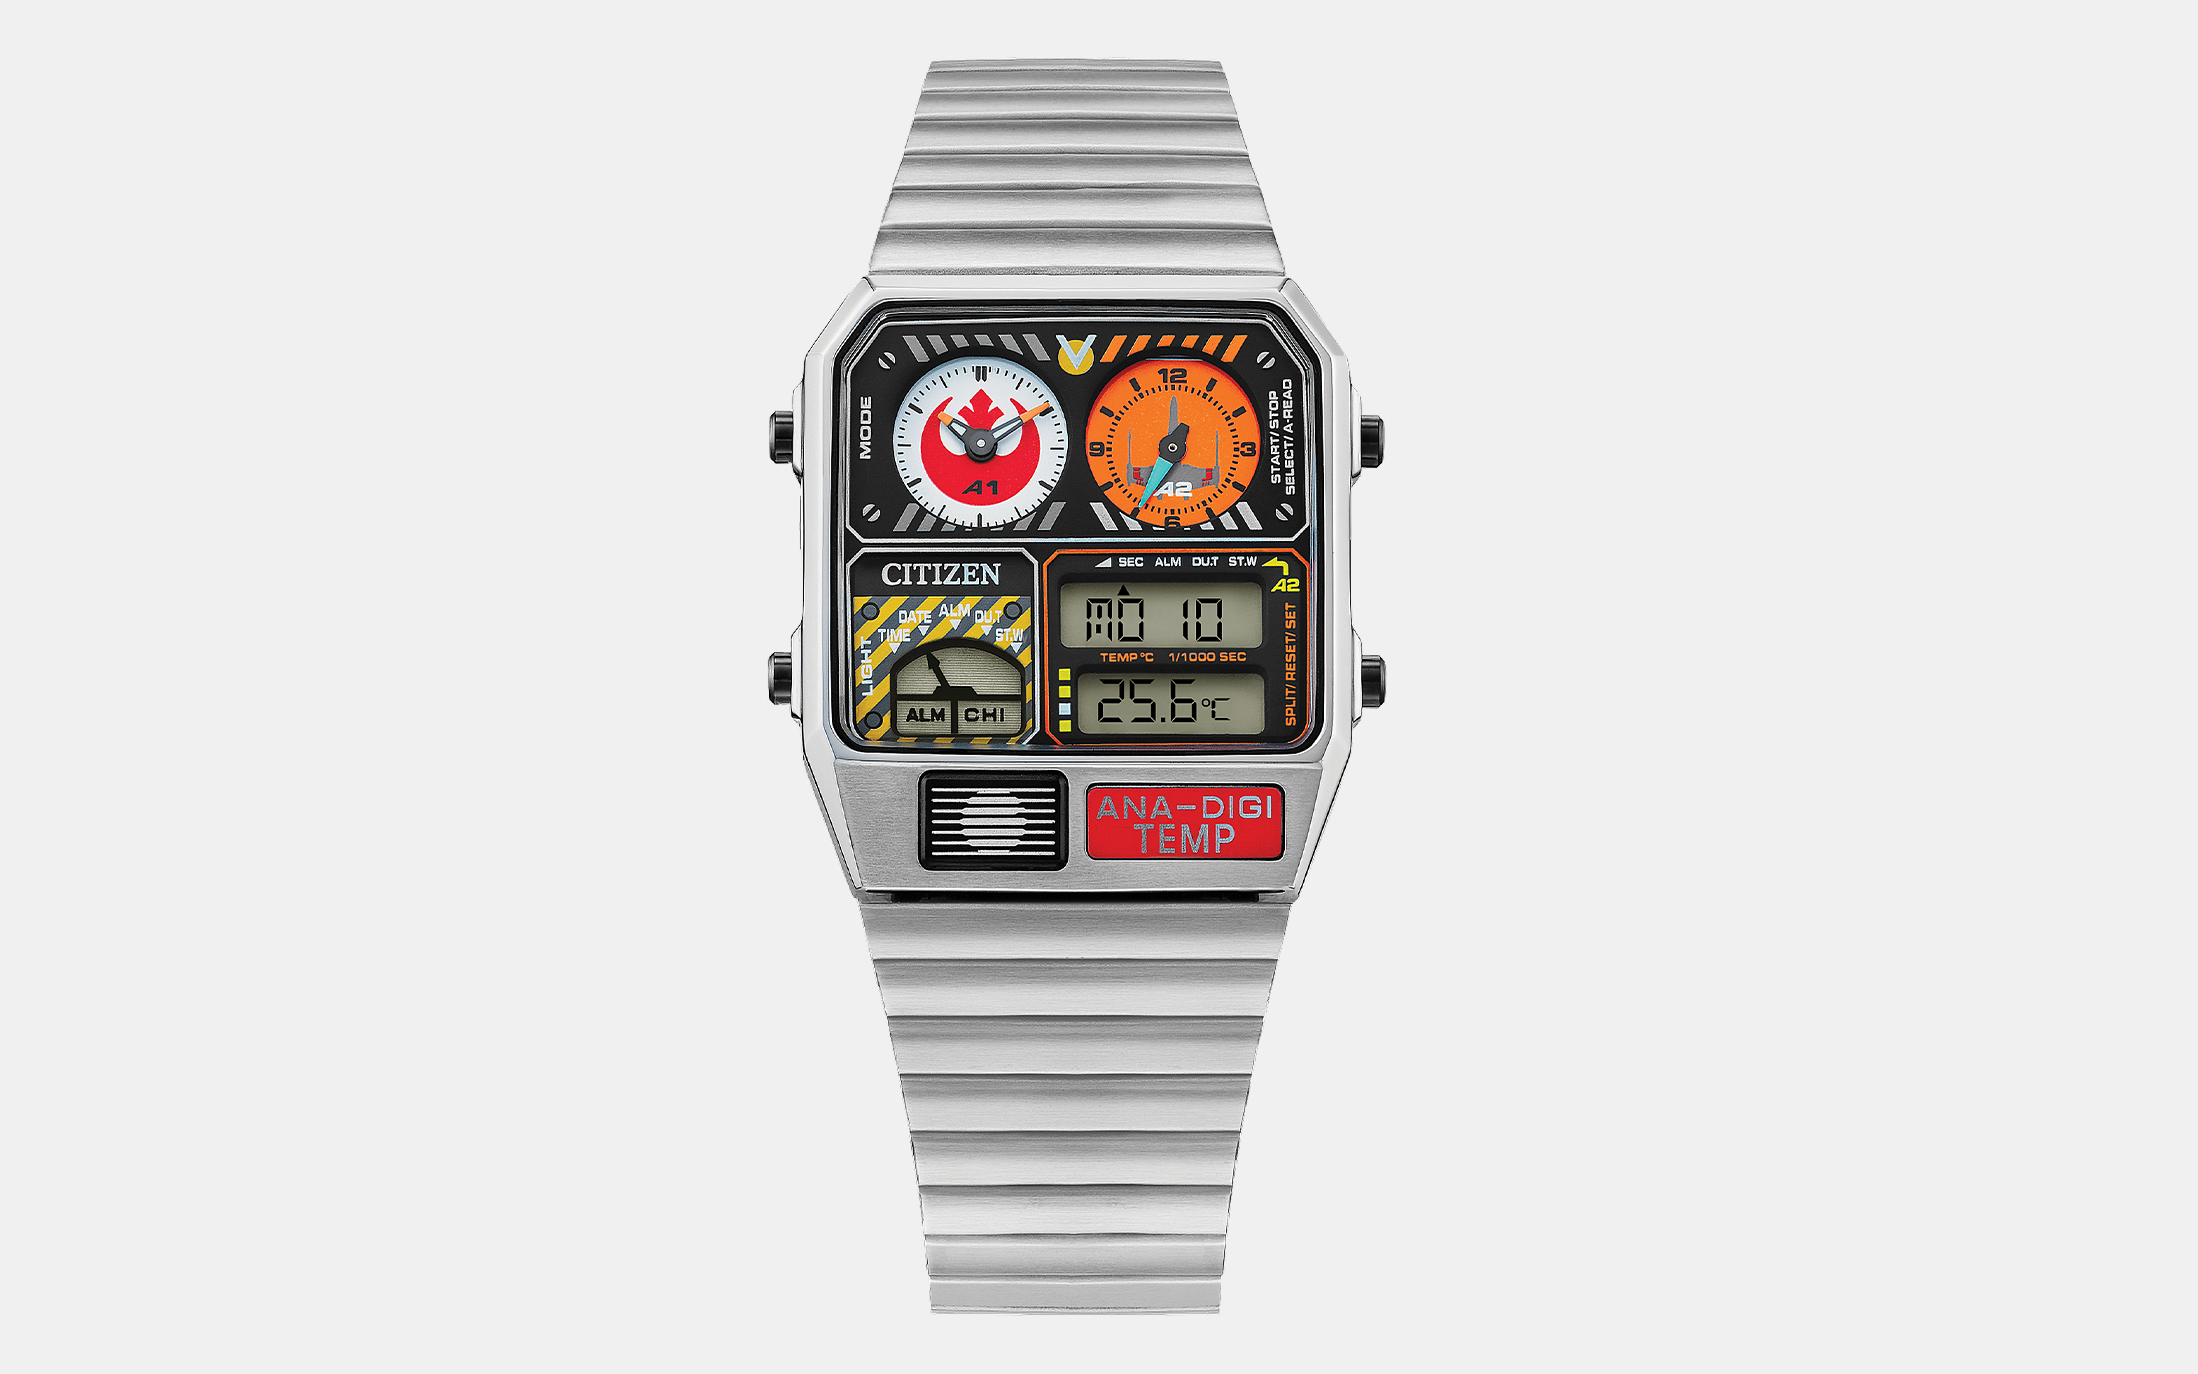 Citizen x Star Wars Rebel Pilot Watch